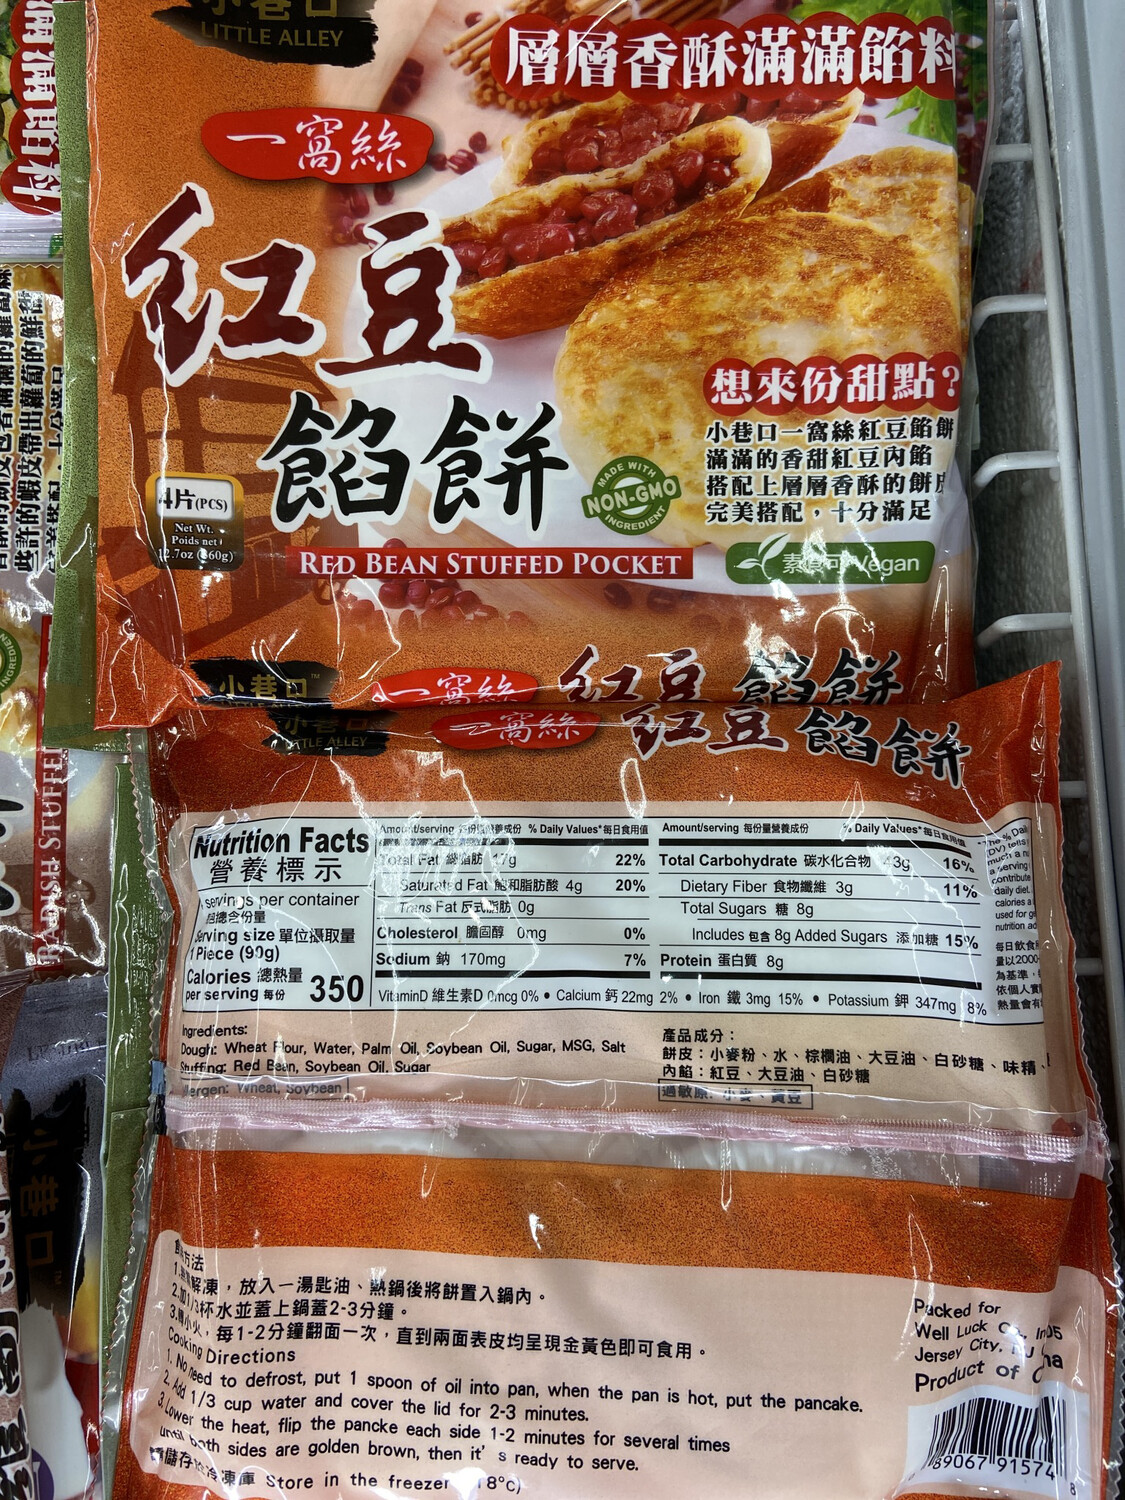 【RF】Red Bean Stuffed Pocket 小巷口一窝丝 红豆馅饼 4pc入